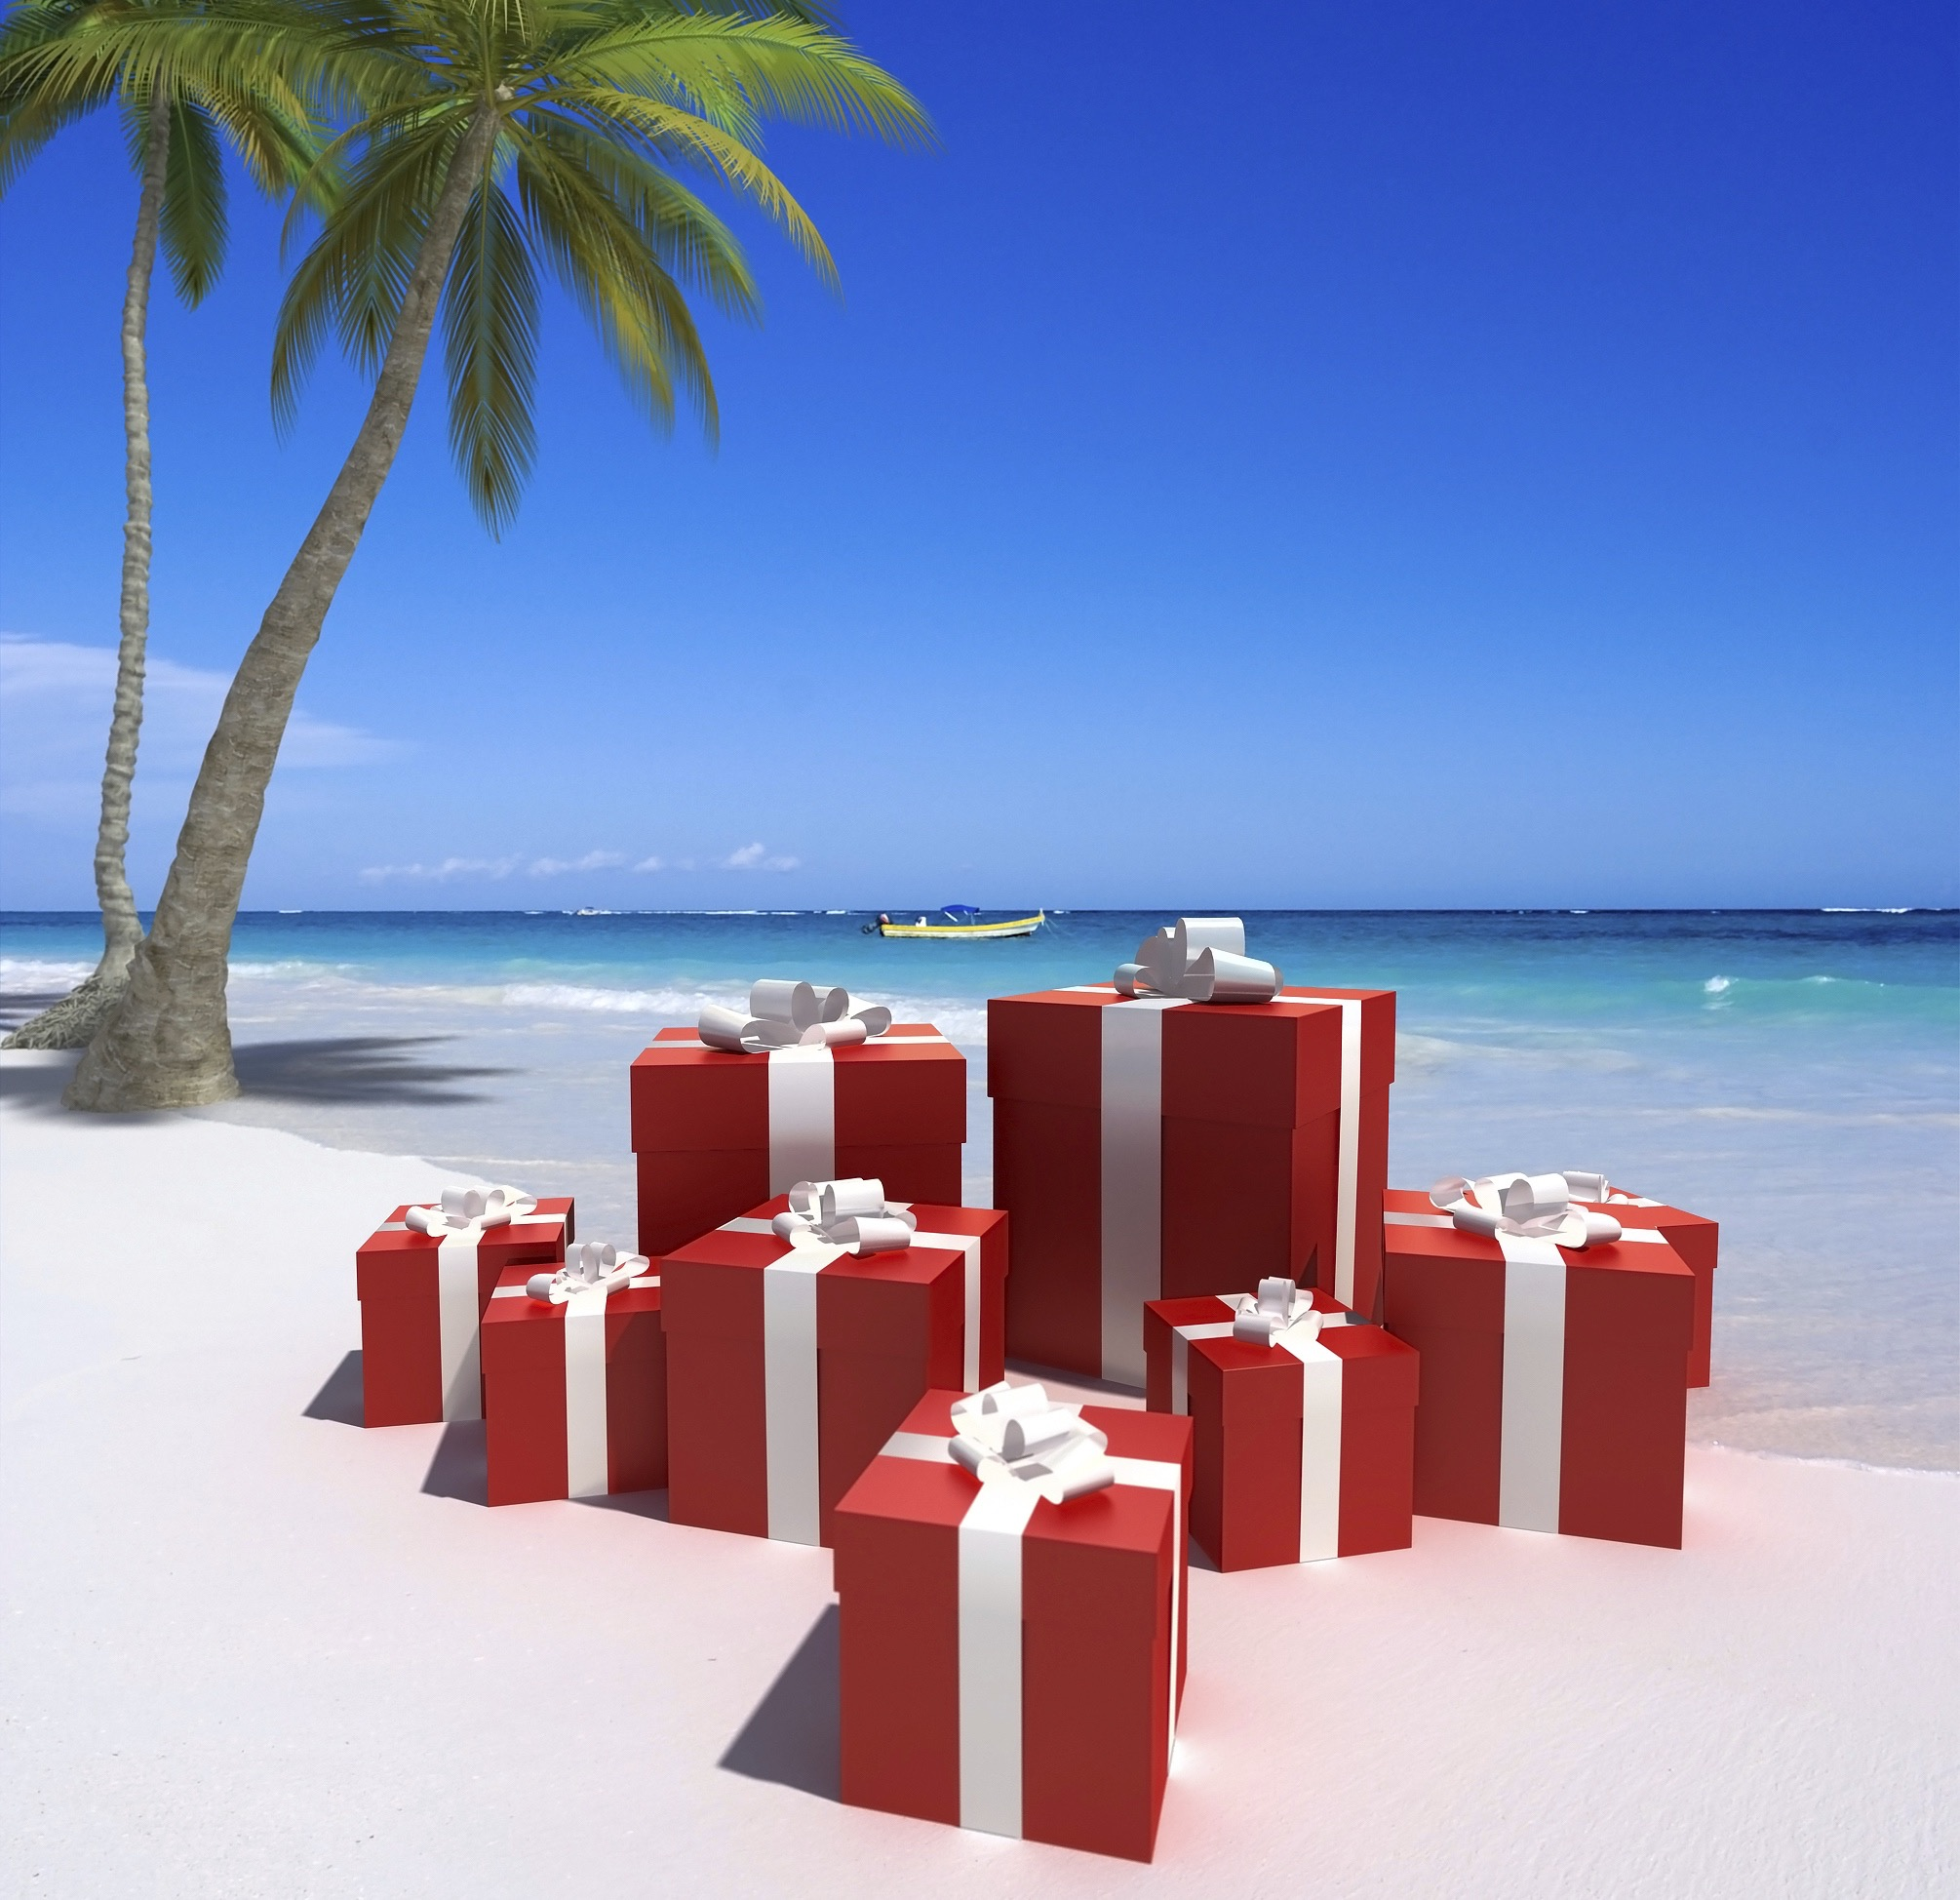 Red gifts on a beach1